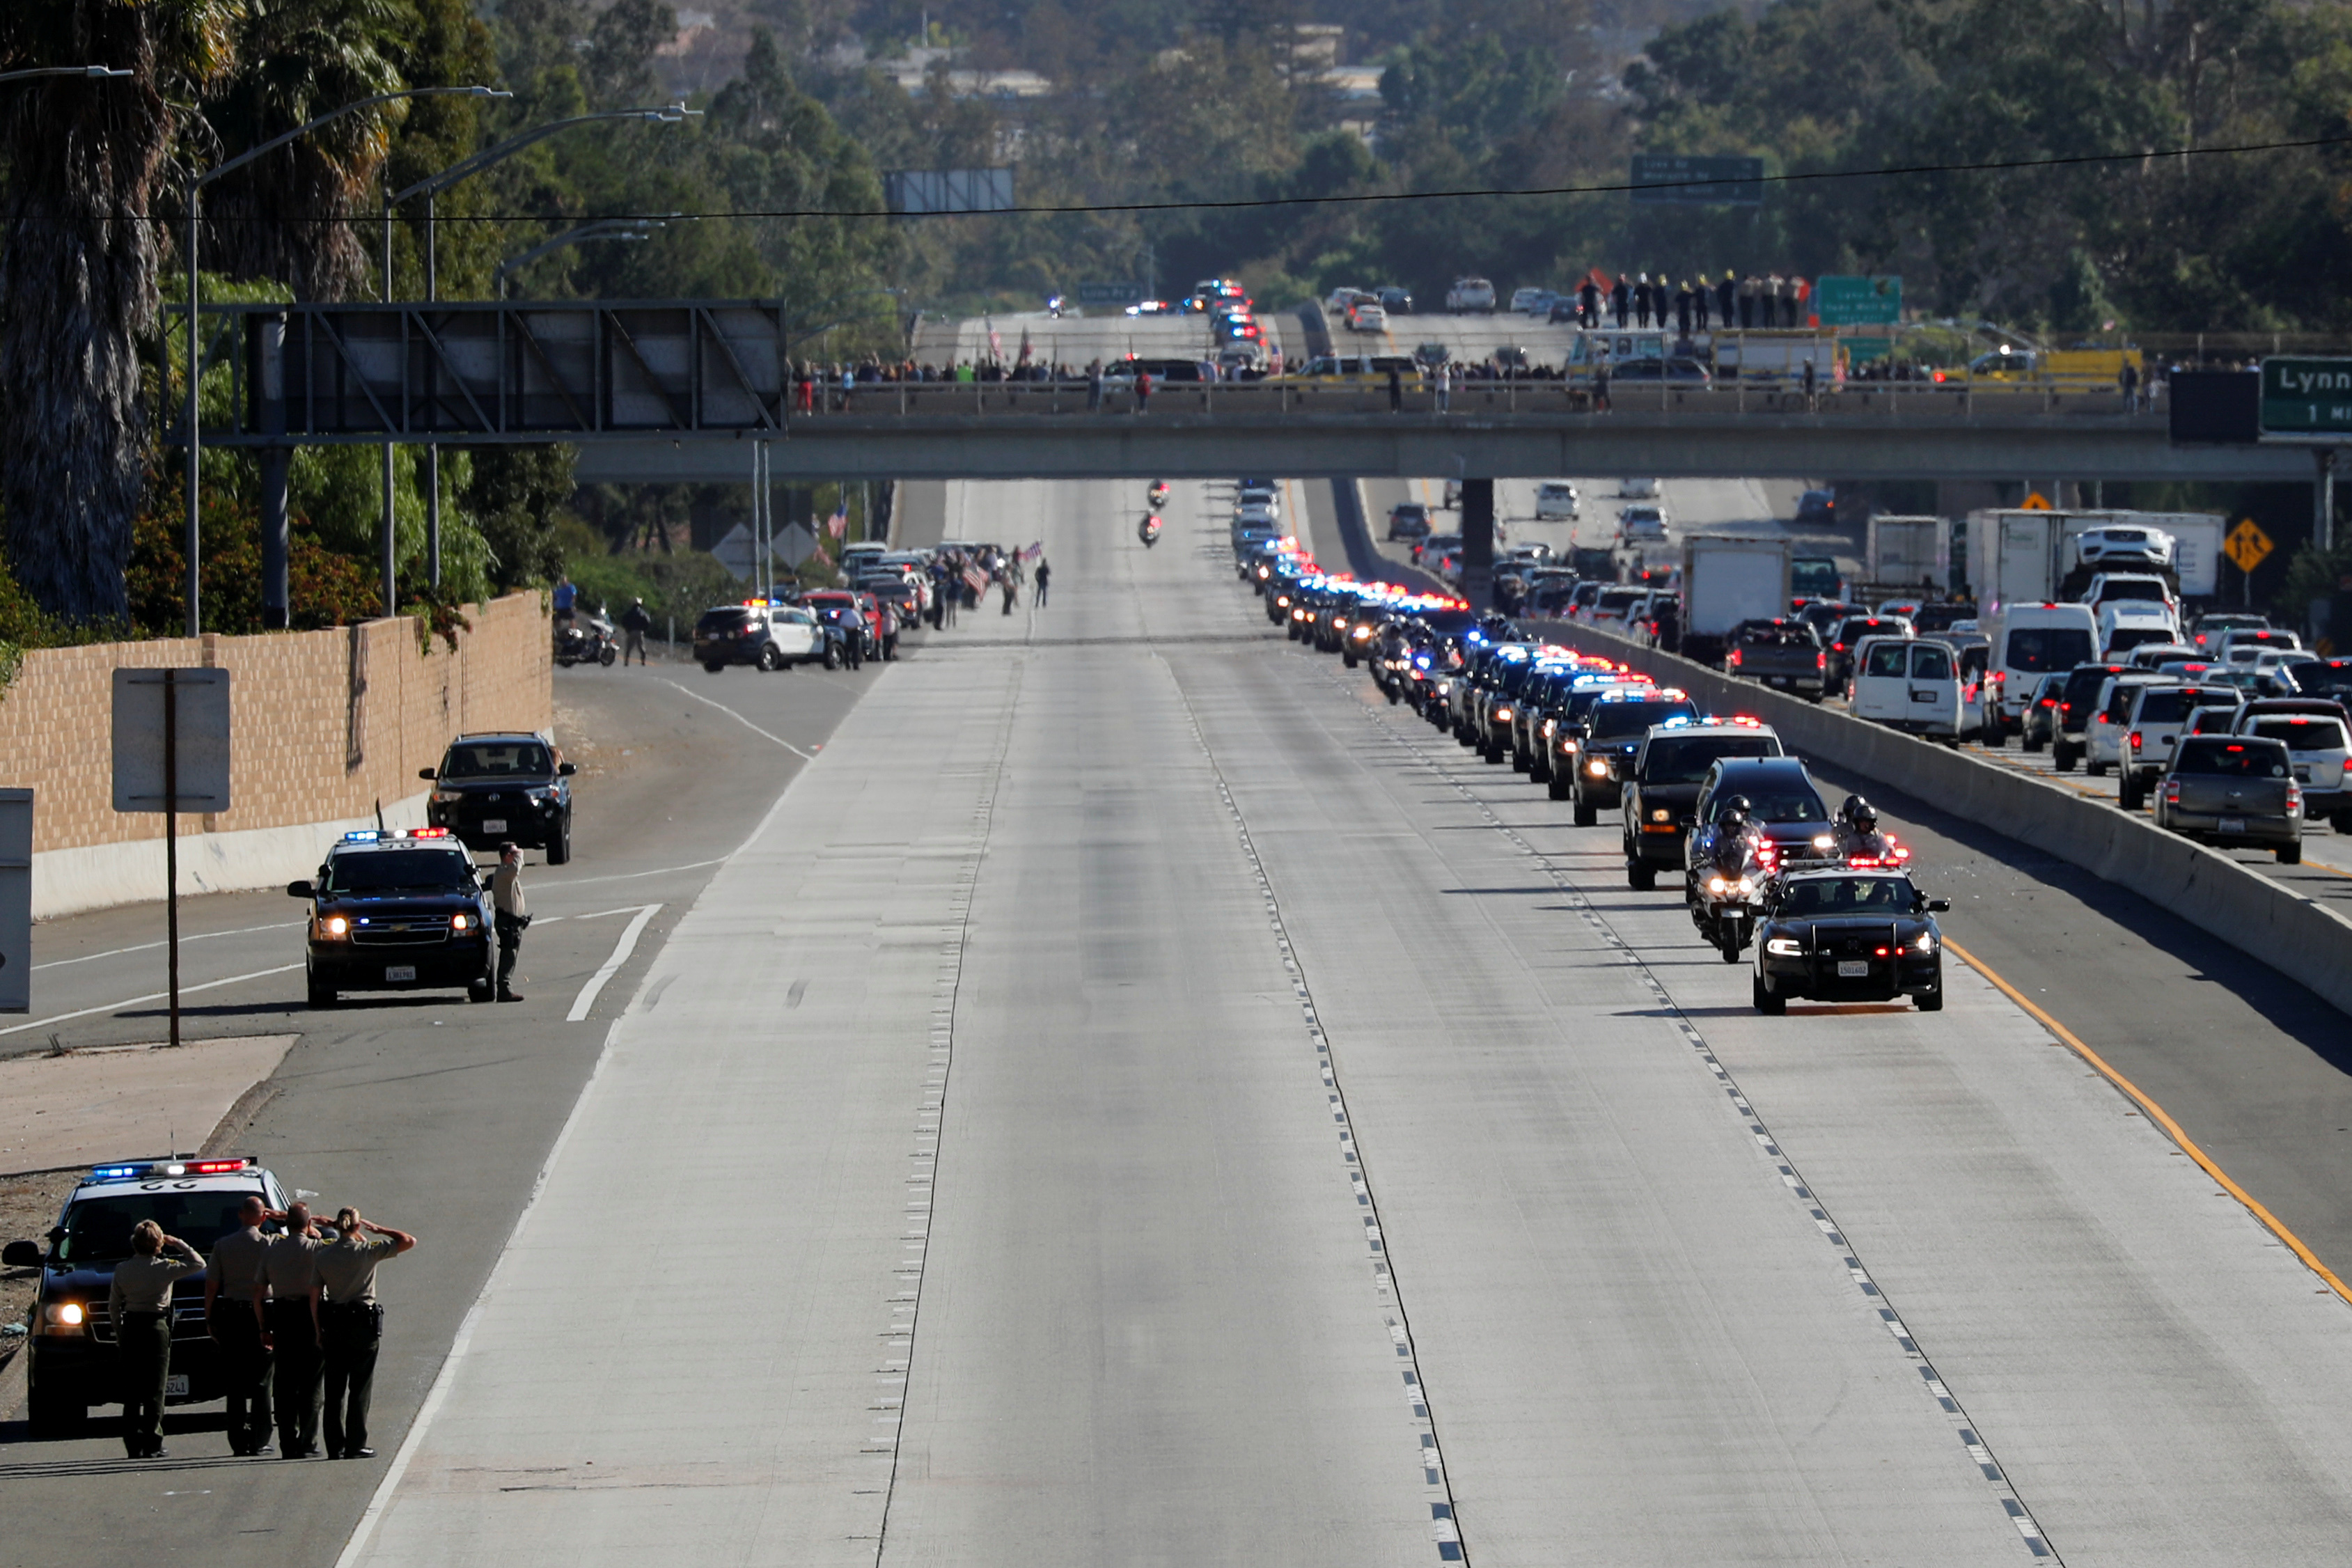 A procession for the body of Sergeant Ron Helus, who died in a shooting incident at a Thousand Oaks bar, drives down Ventura HIghway 101 in Thousand Oaks, California